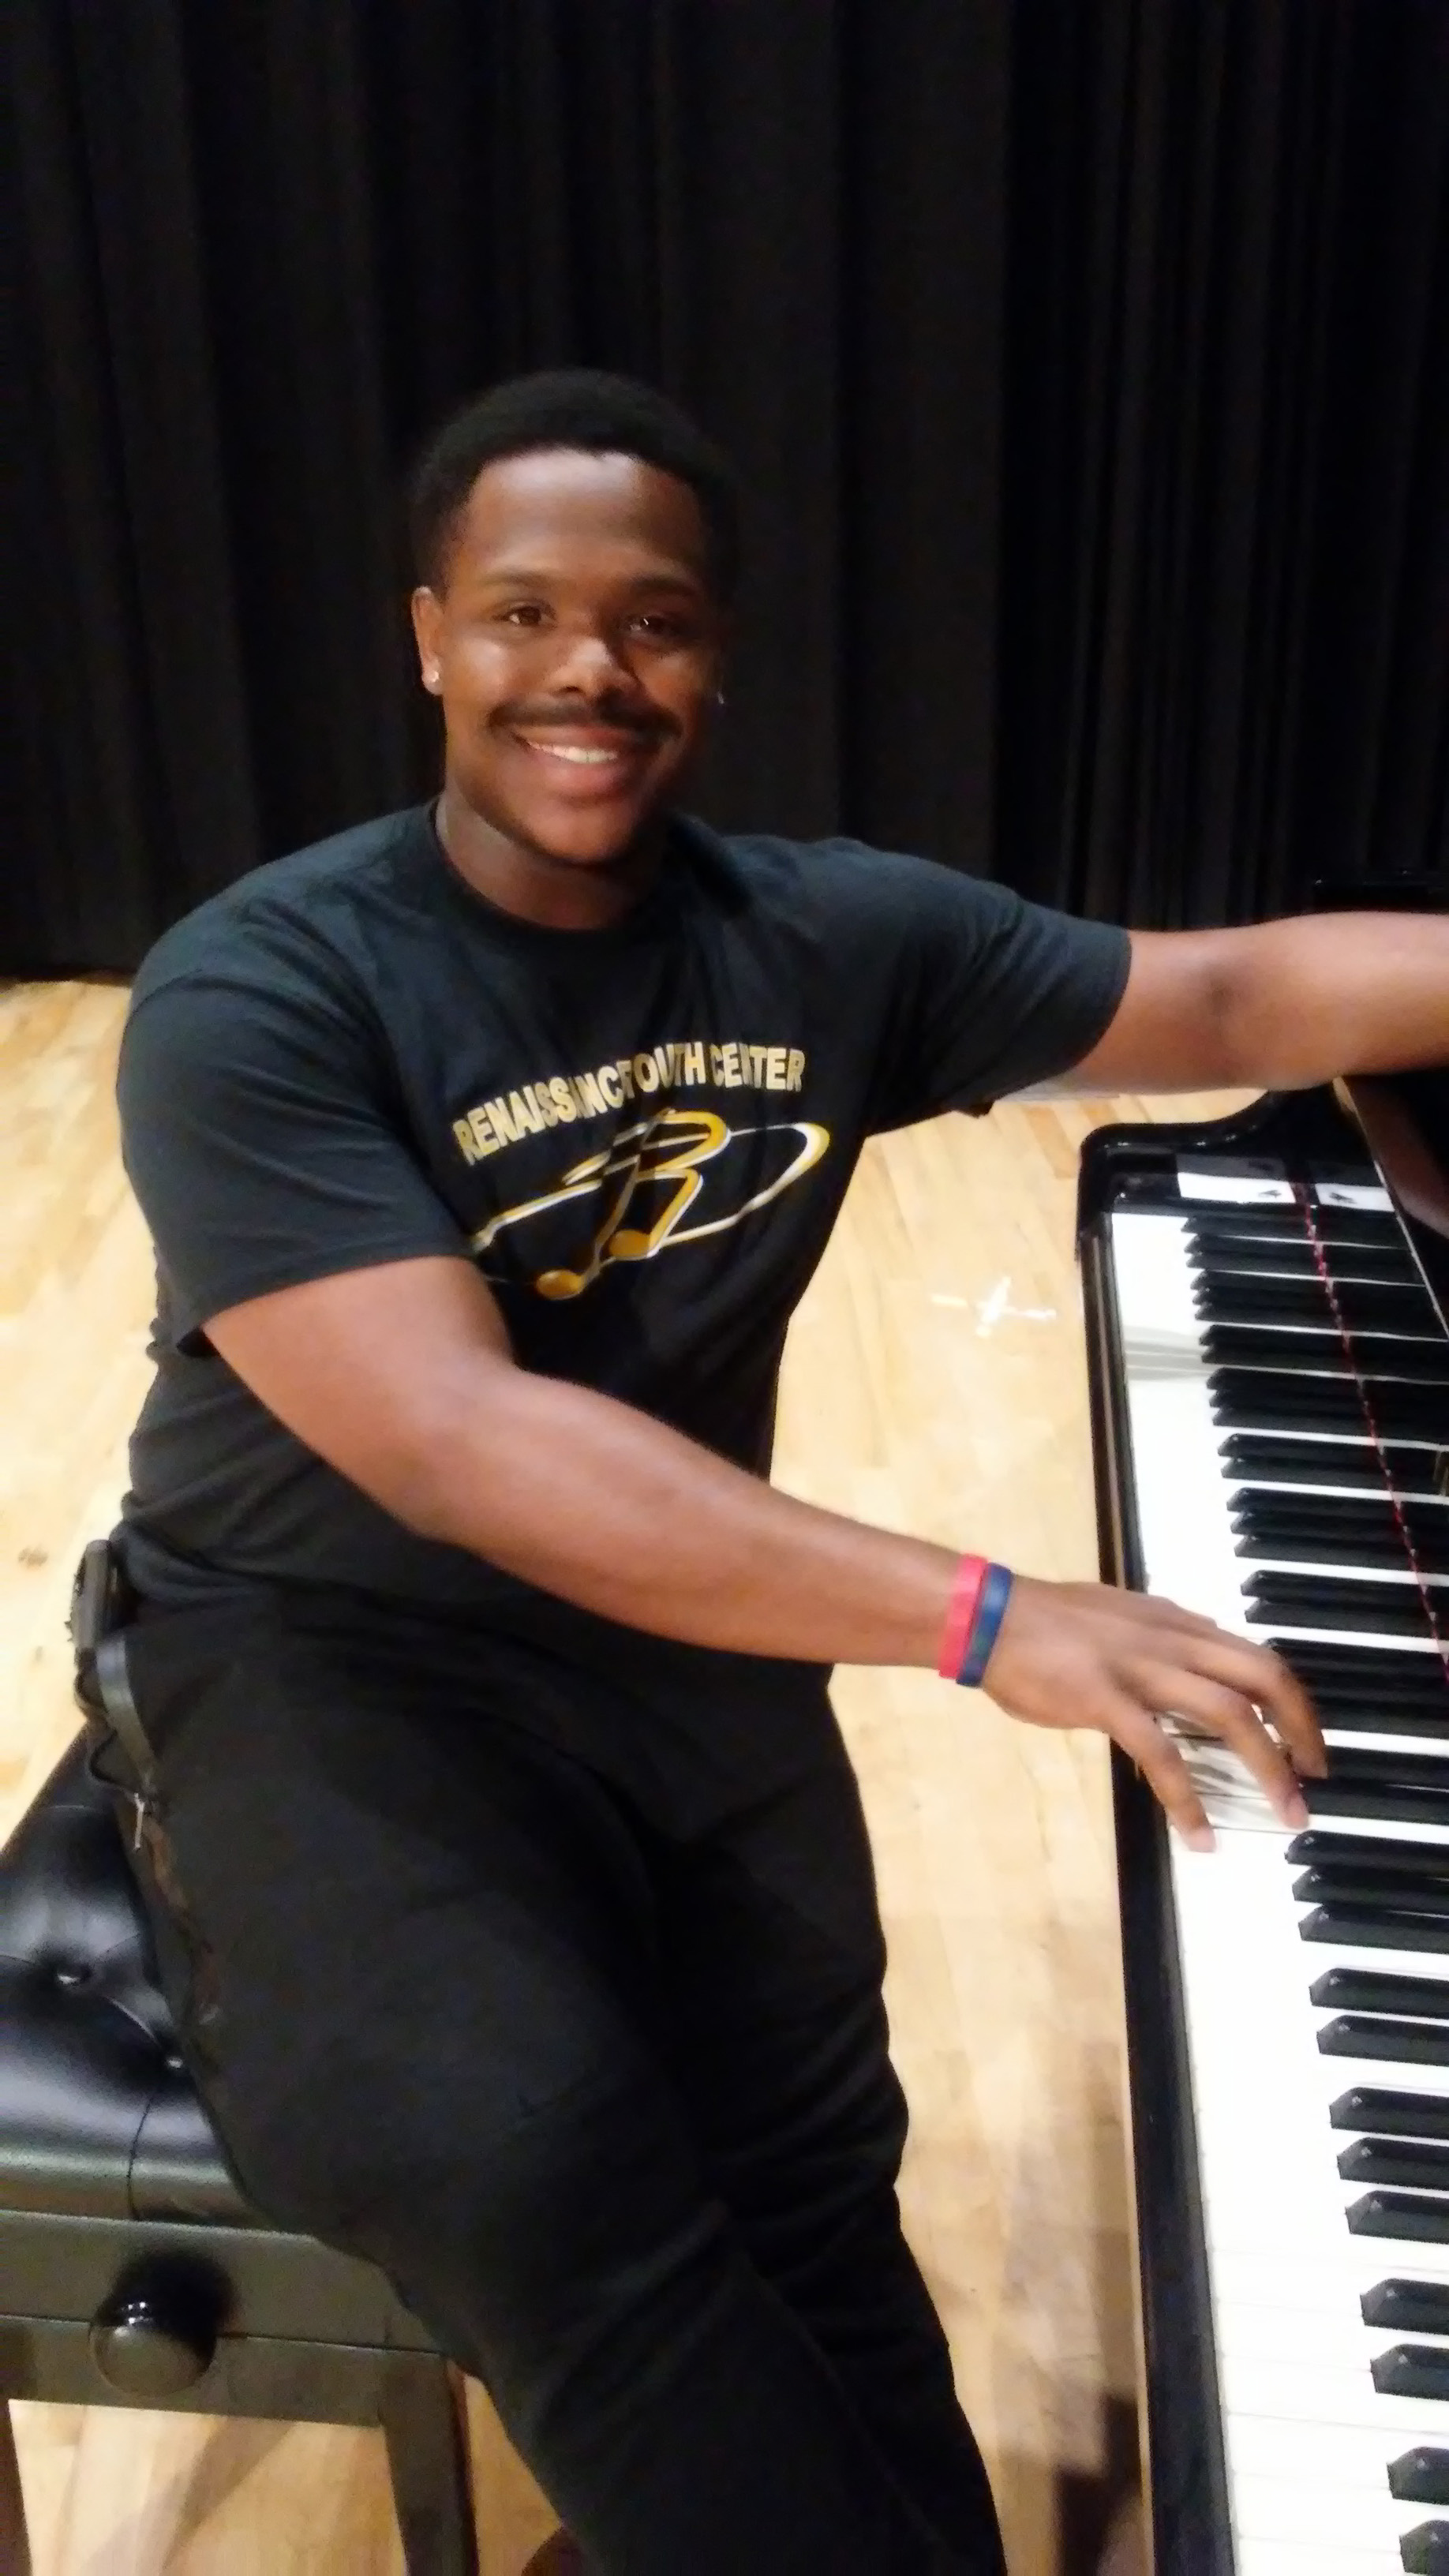 Musical Composer Allen Branch is a student at Baltimore's Peabody Conservatory.